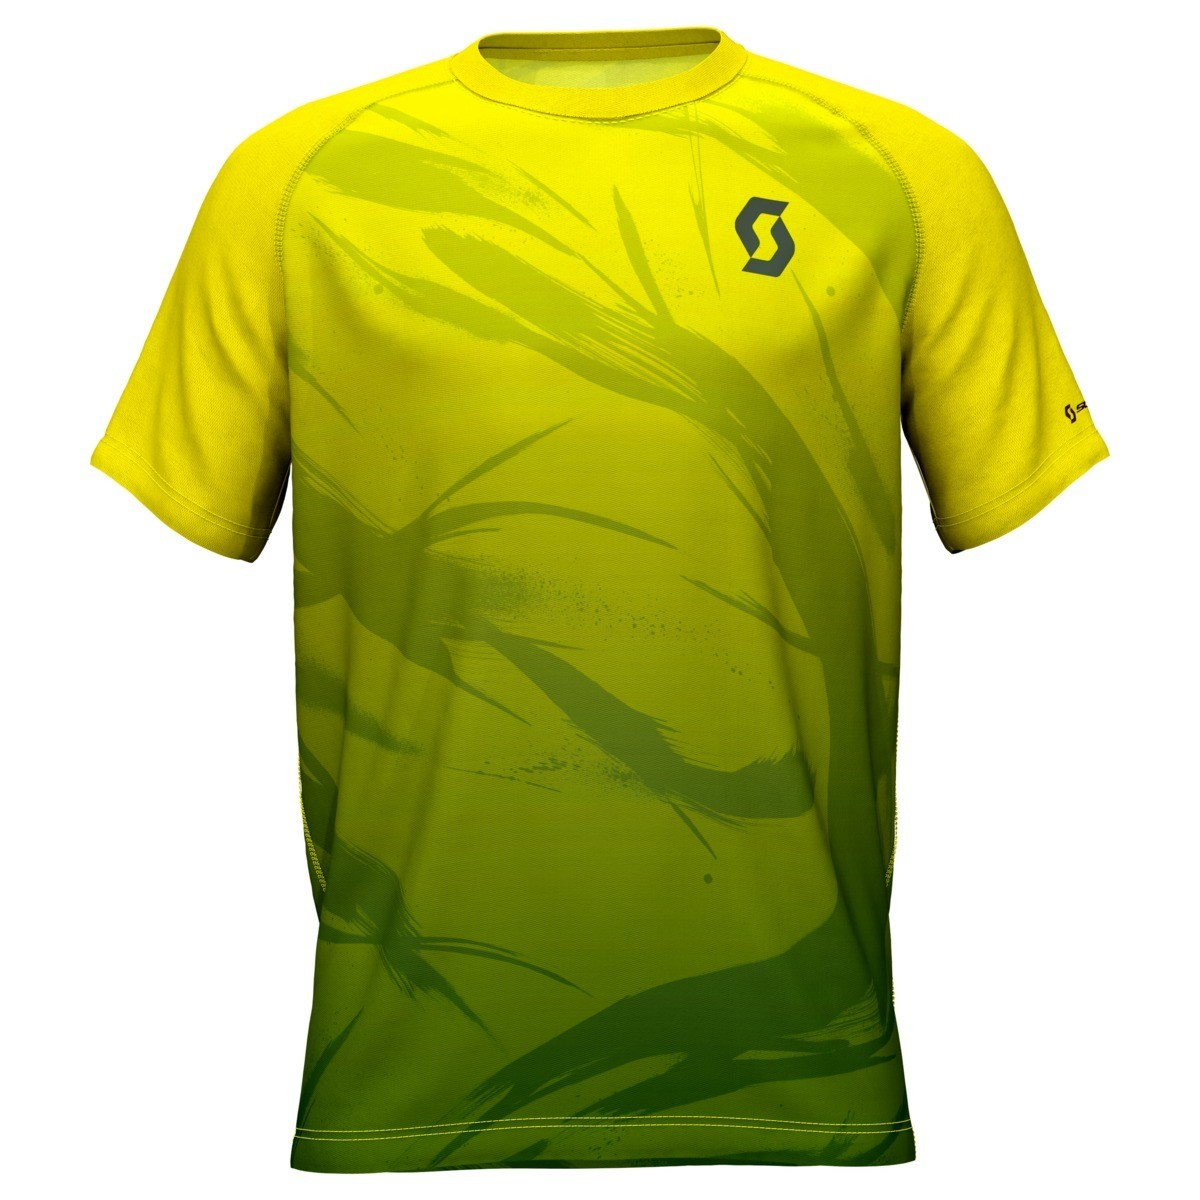 Scott t-shirt Kinabalu heren yellow/green